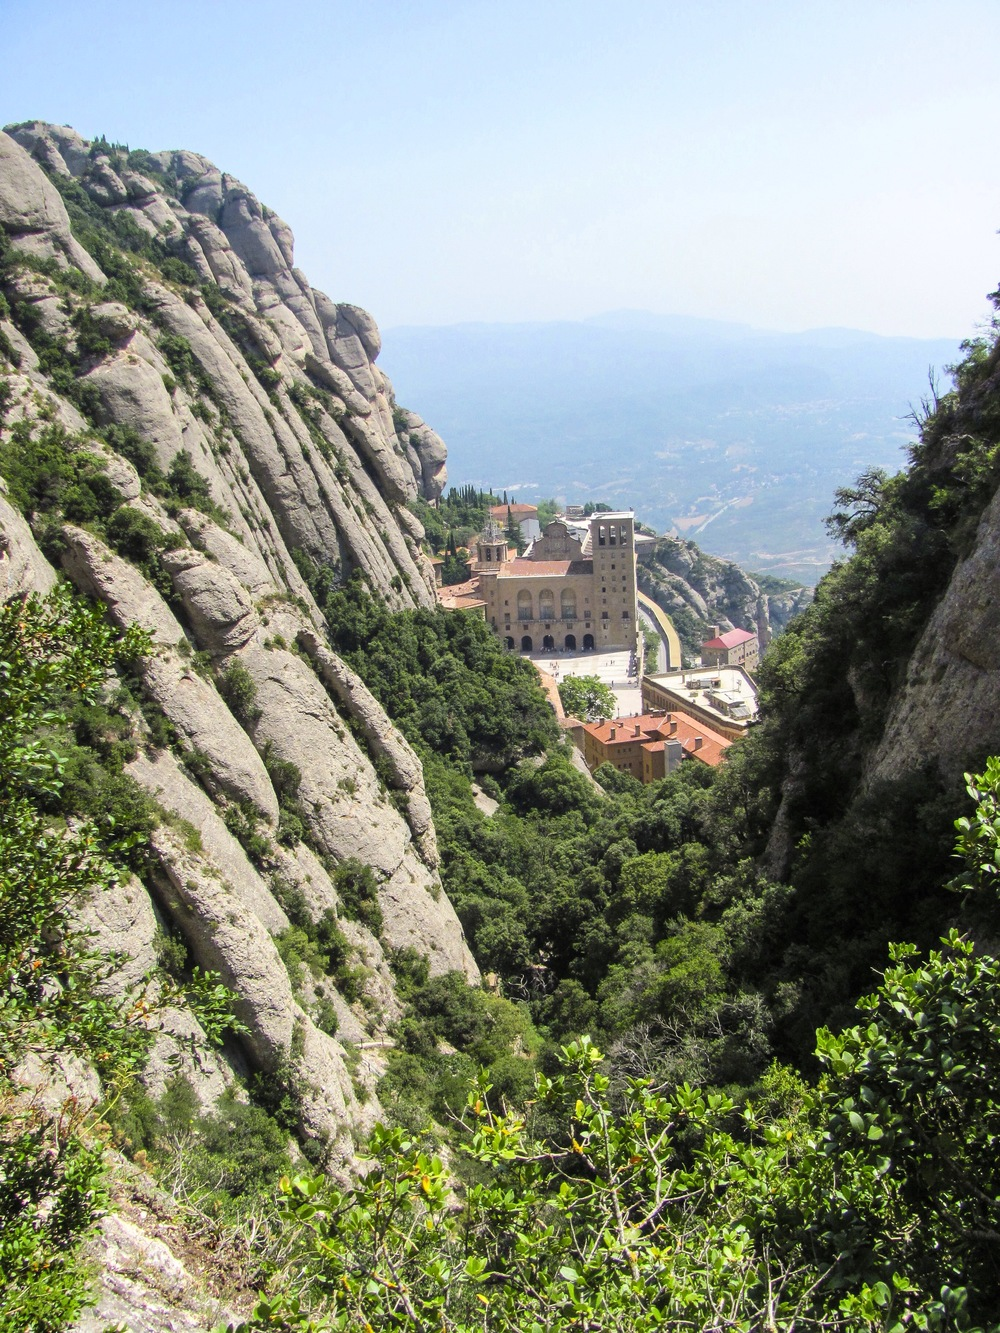 The Monastery tucked inside the enormity of the mountain.